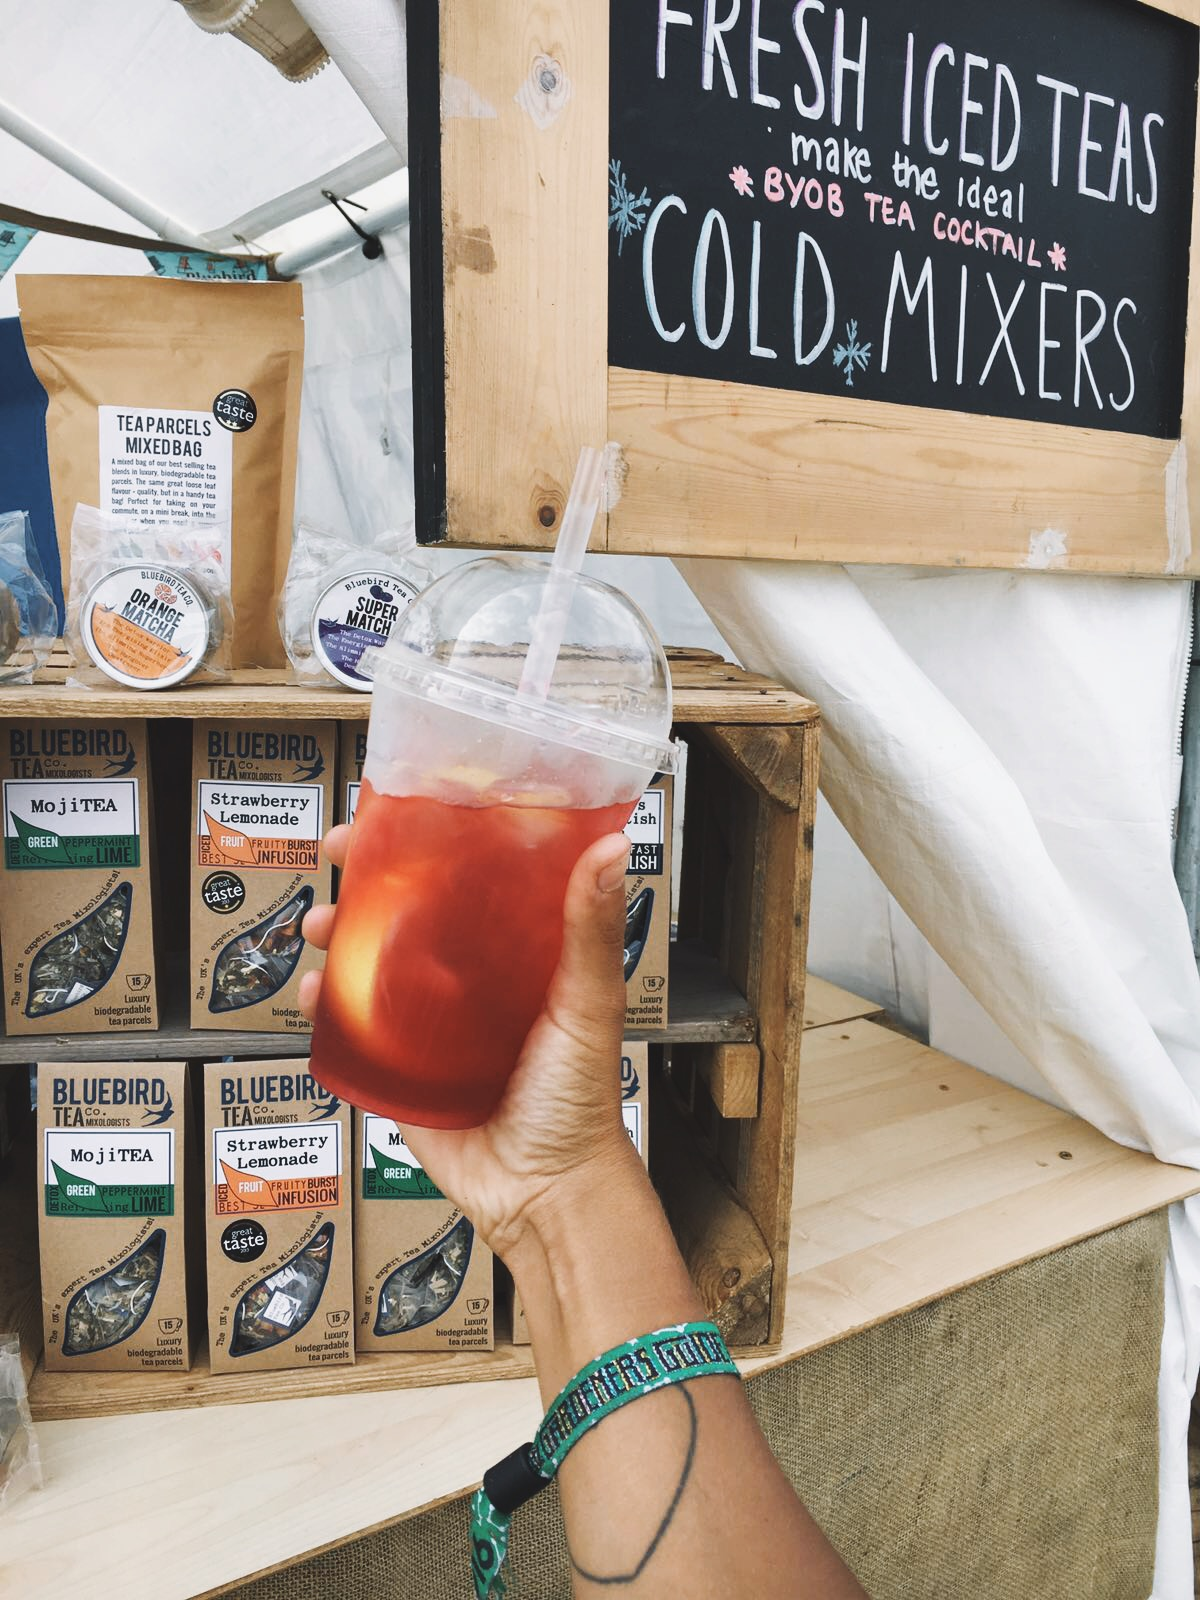 Shout out to these amazing iced teas from  BLUEBIRD !